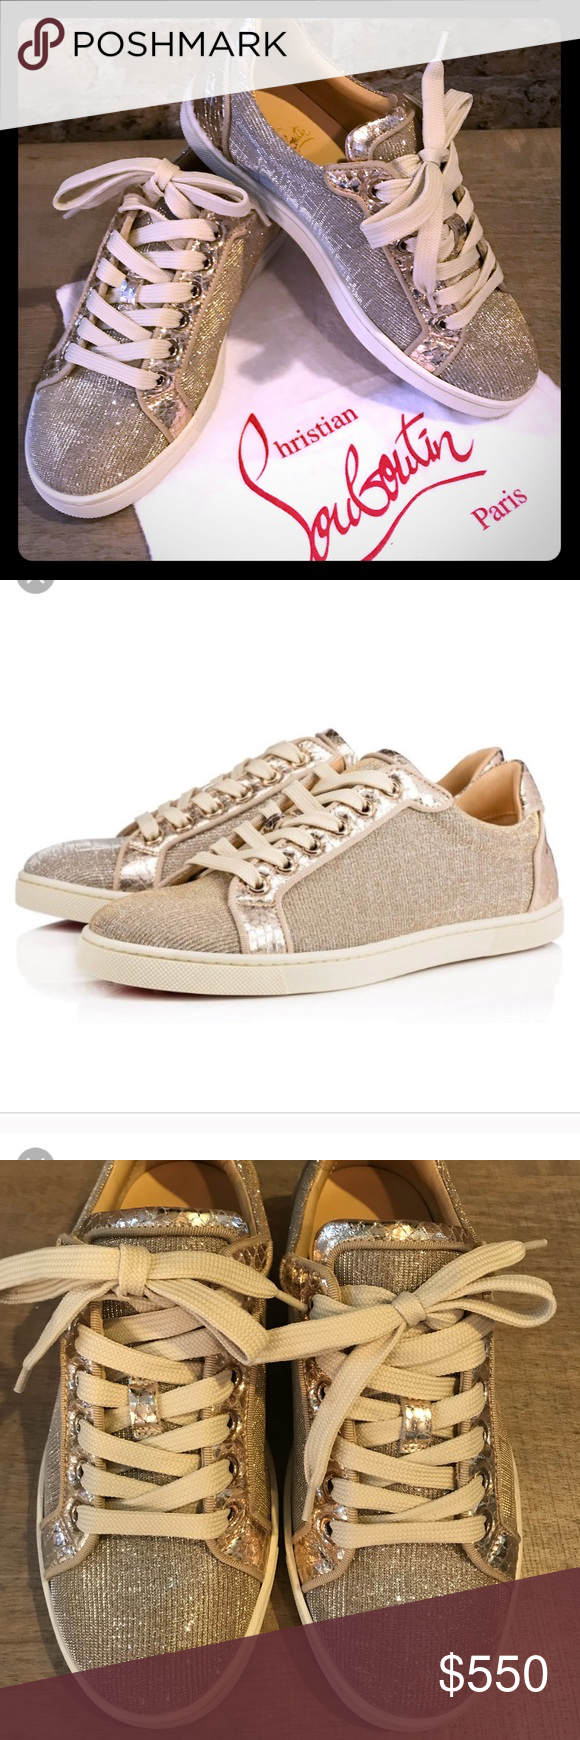 2531275ffb11 Christian Louboutin Saeva Woven Low-Top Sneakers Authentic Christian  Louboutin sneakers in excellent condition.